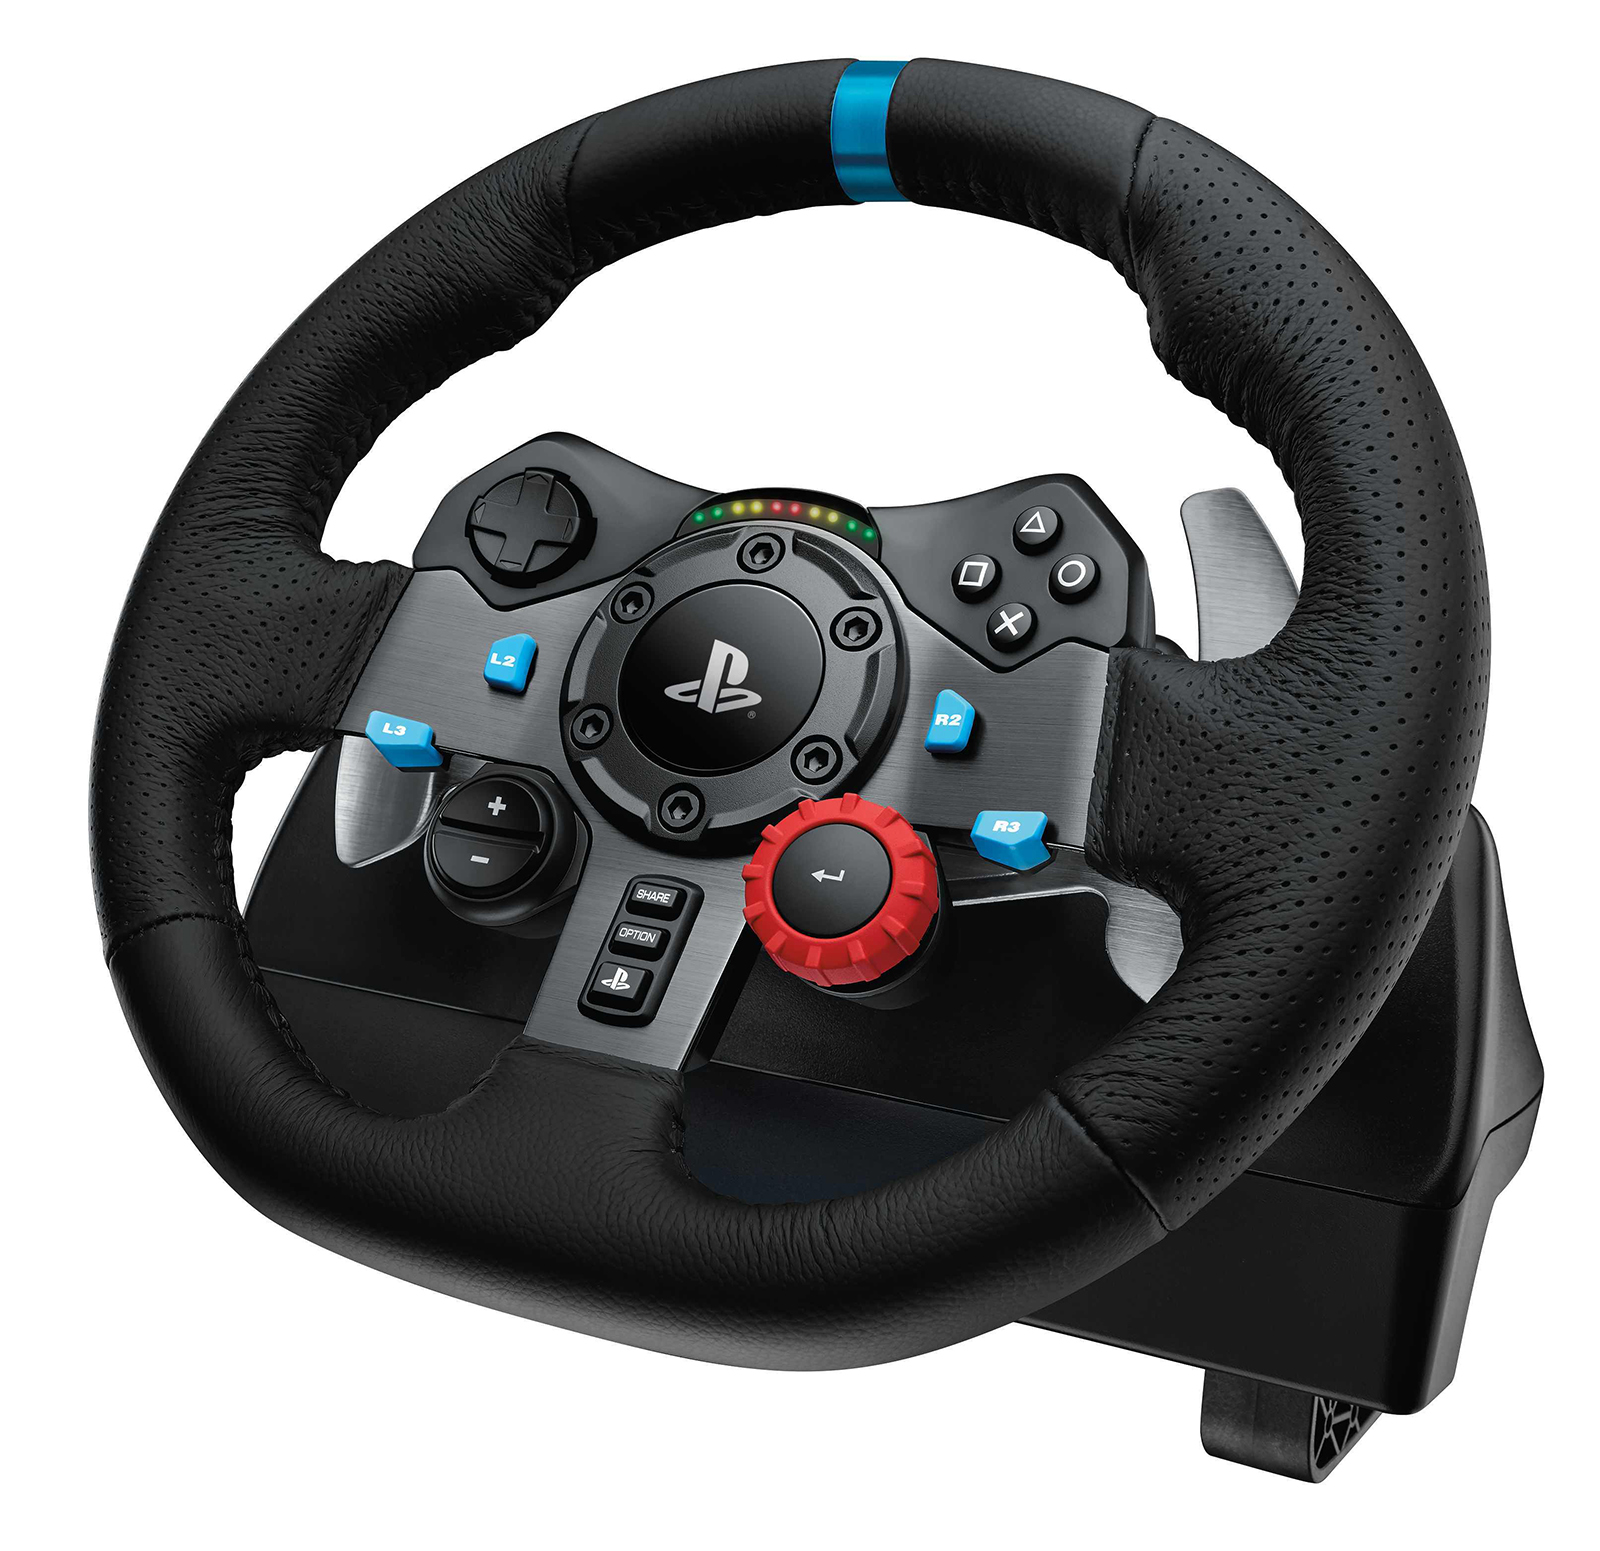 Logitech Introduces G29, G920 Racing Wheels For PS3, PS4, Xbox One And PC